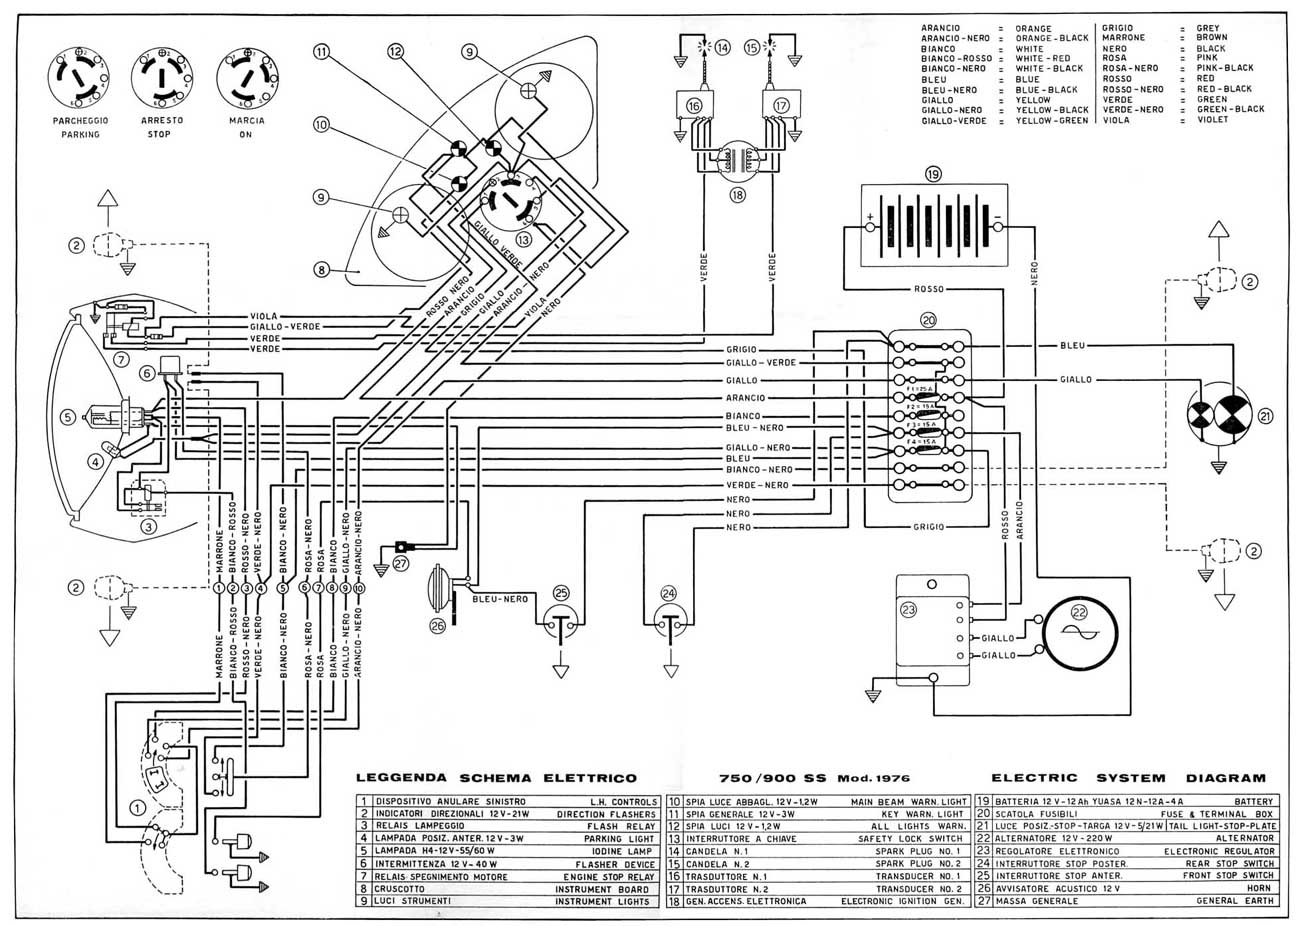 wiring diagram 1975 77 750 900 ss workshop manual 1978 900